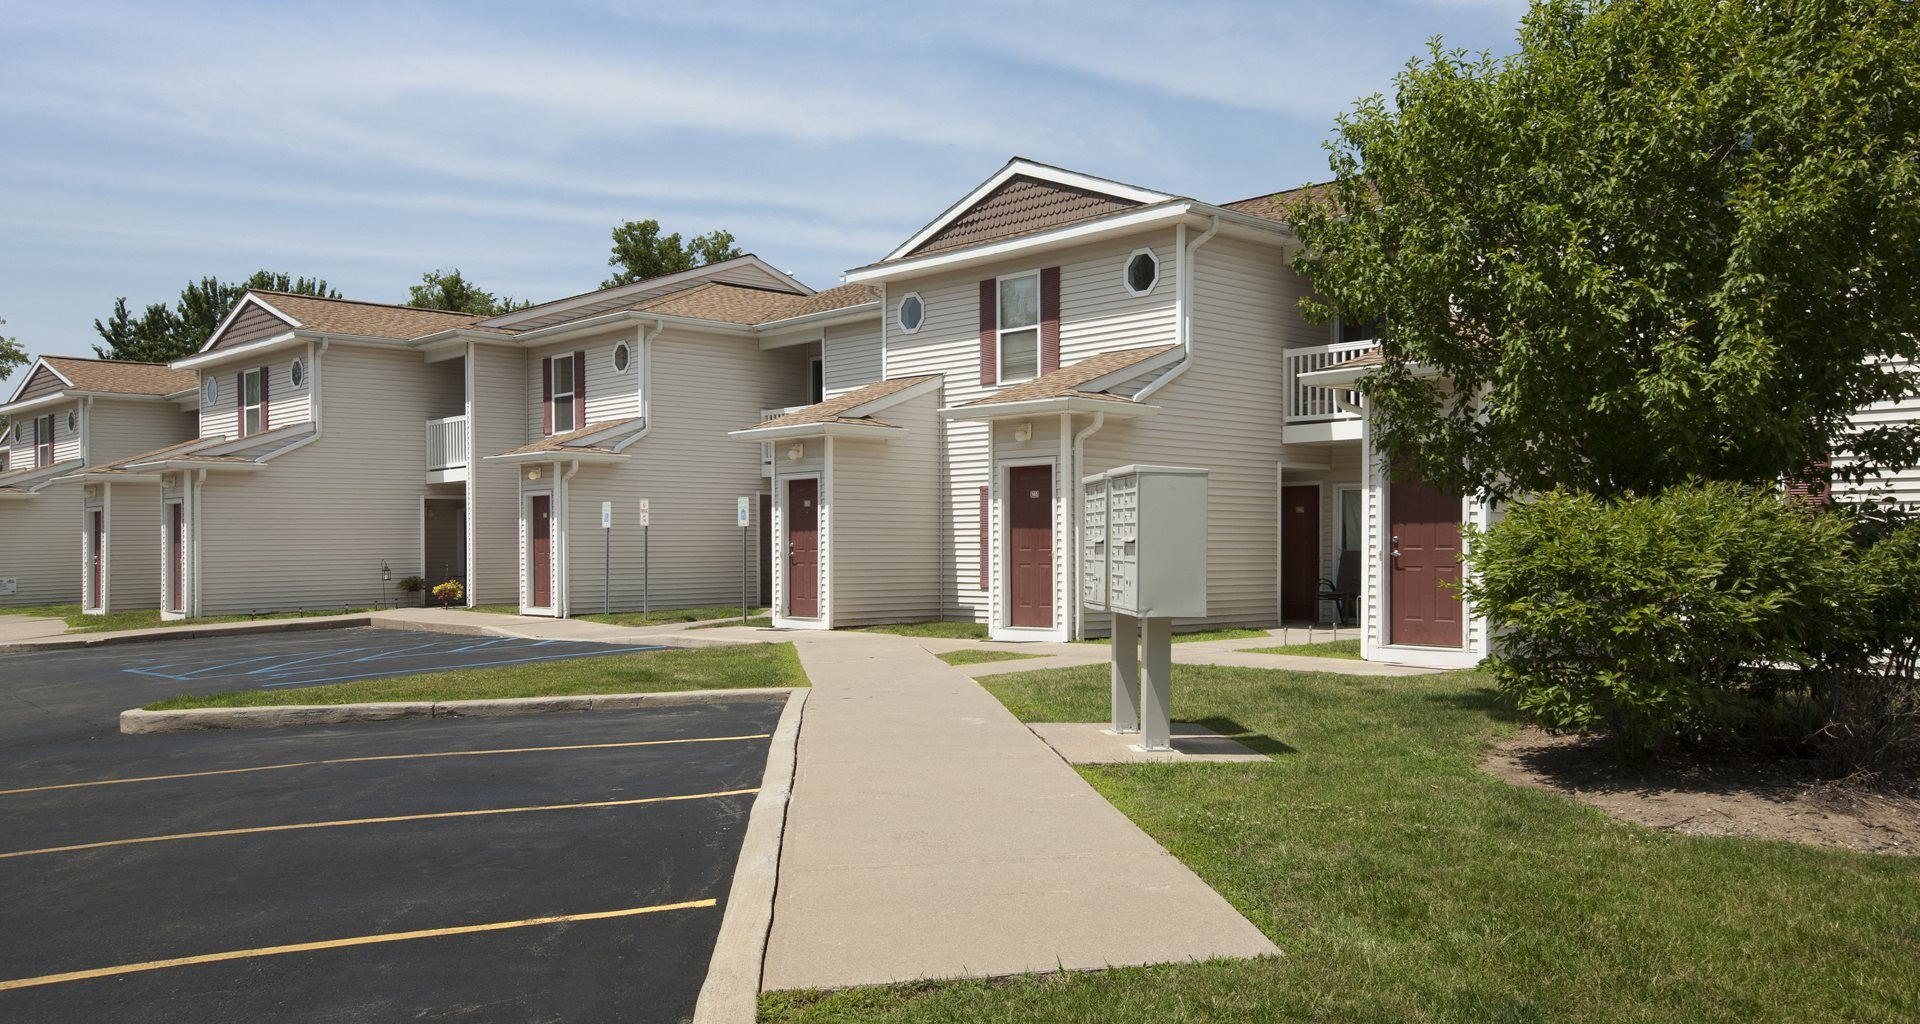 Columbia woods apartments apartments in cohoes ny for Columbia woods